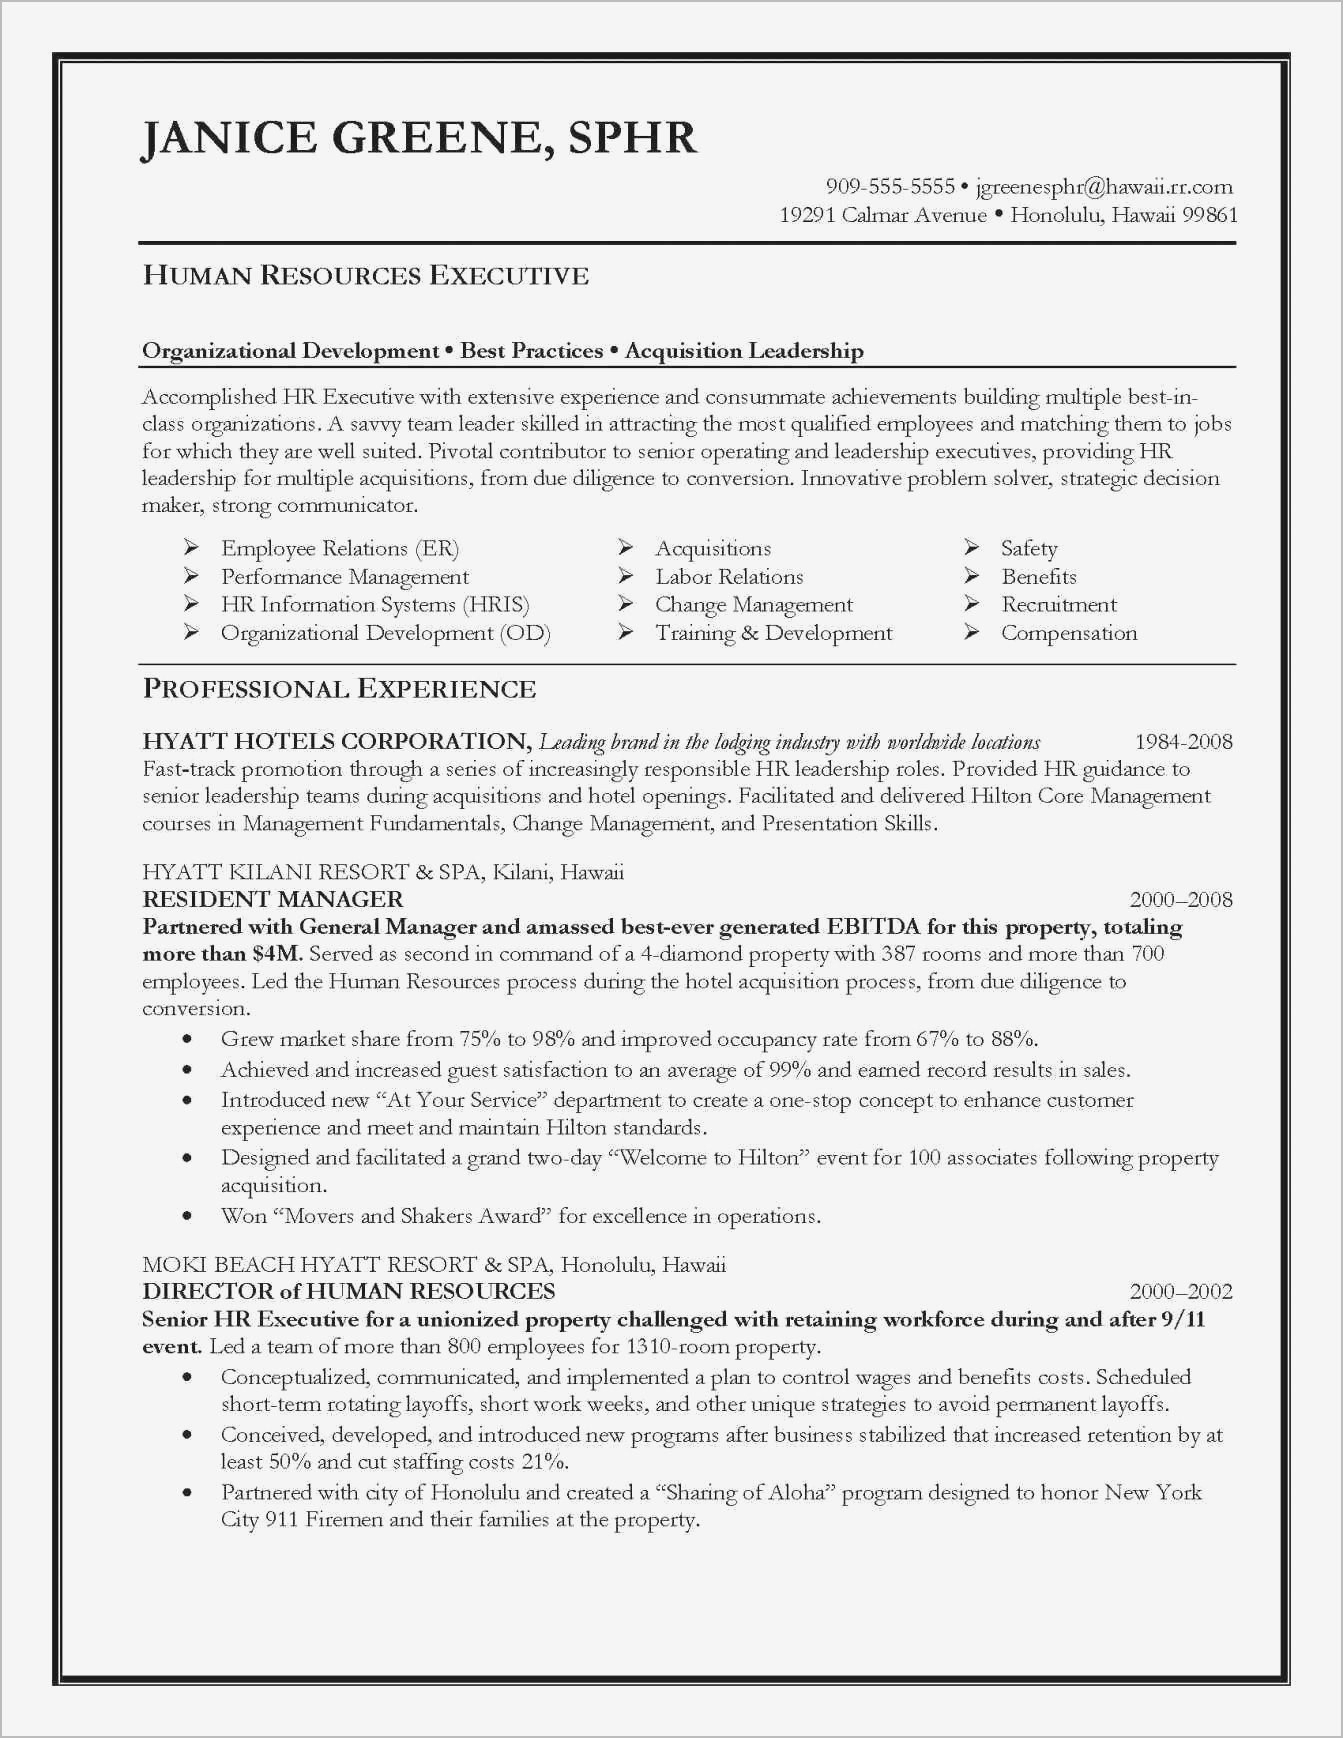 professional resume writing service review writers reviews self made for little work Resume Resume Professional Writers Reviews